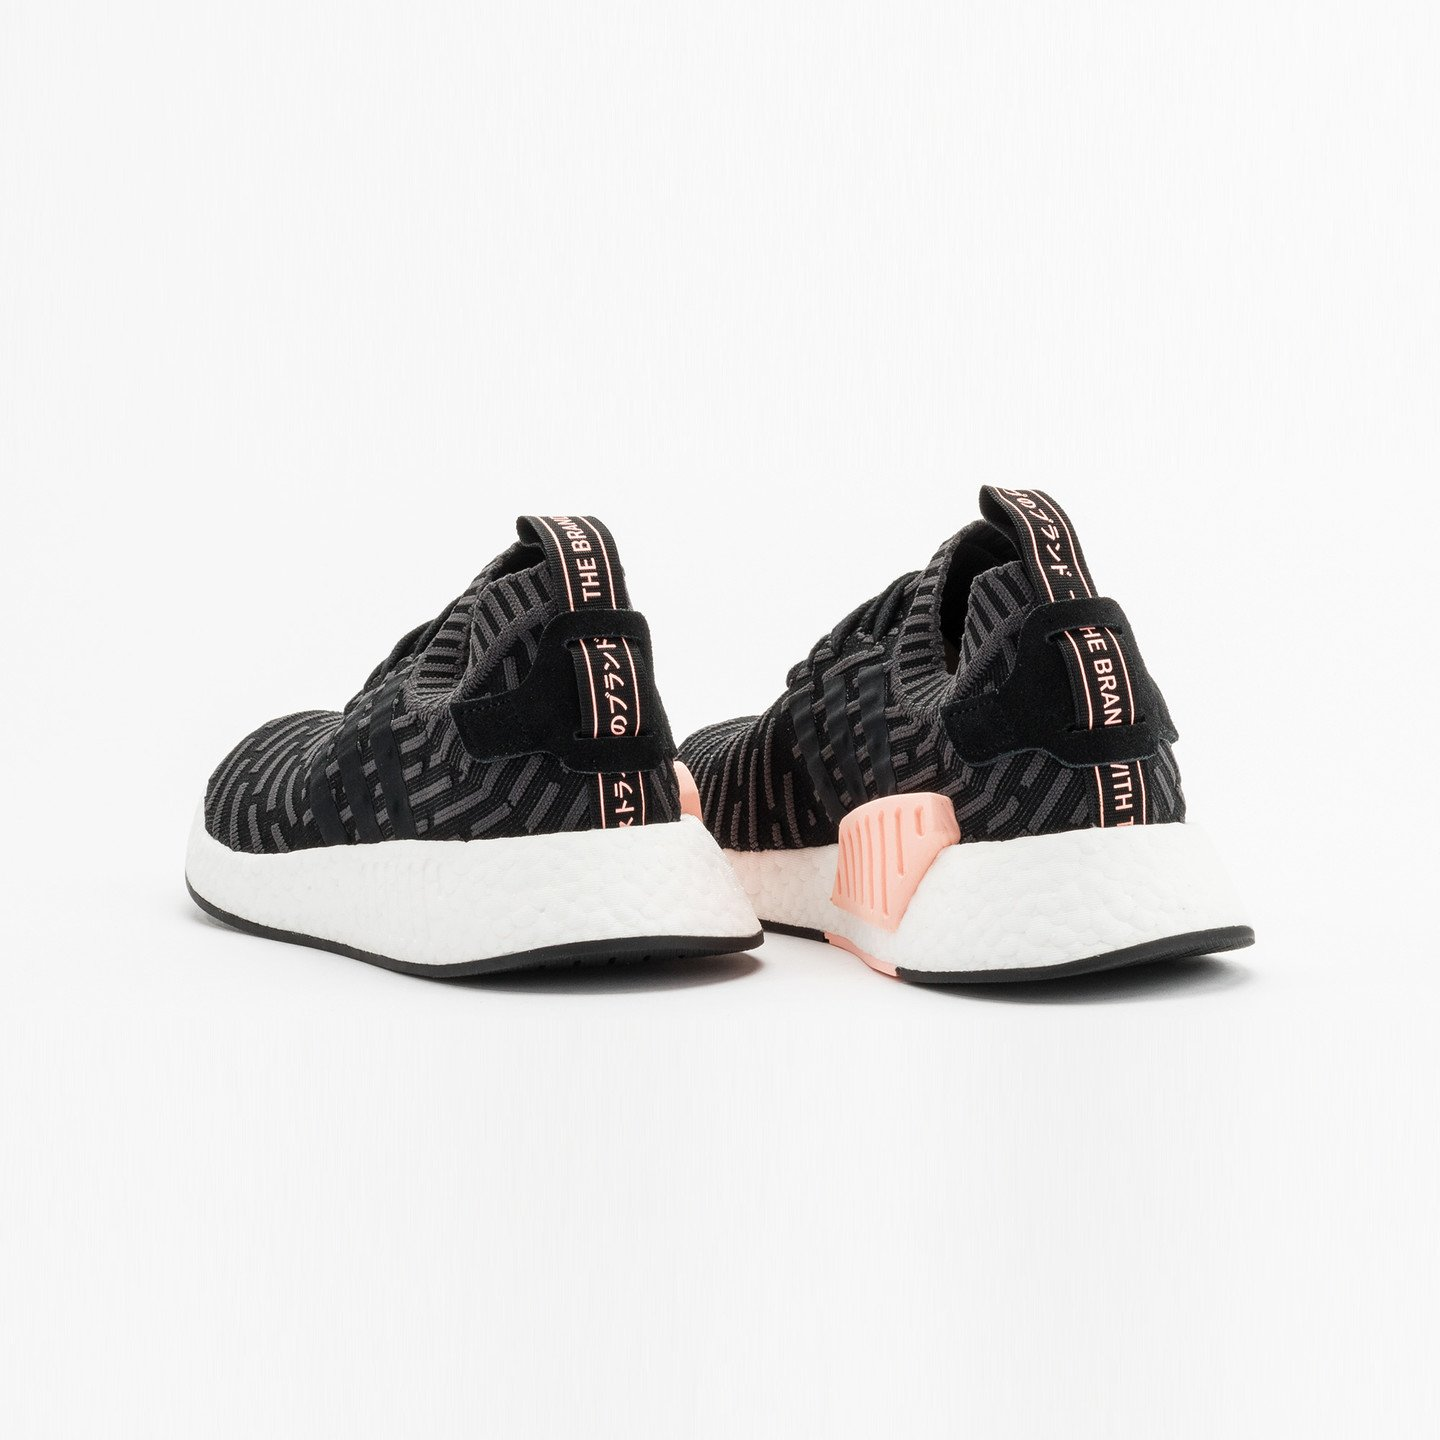 Adidas NMD R2 PK W Utility Black / Core Black / Light Peach BA7239-42